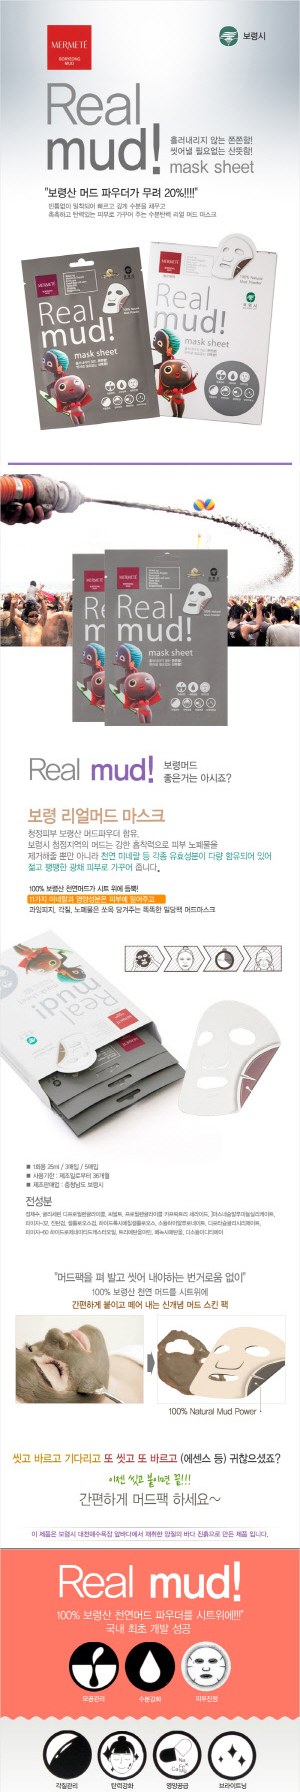 Mermete Real Mud! Mask Sheet (info)